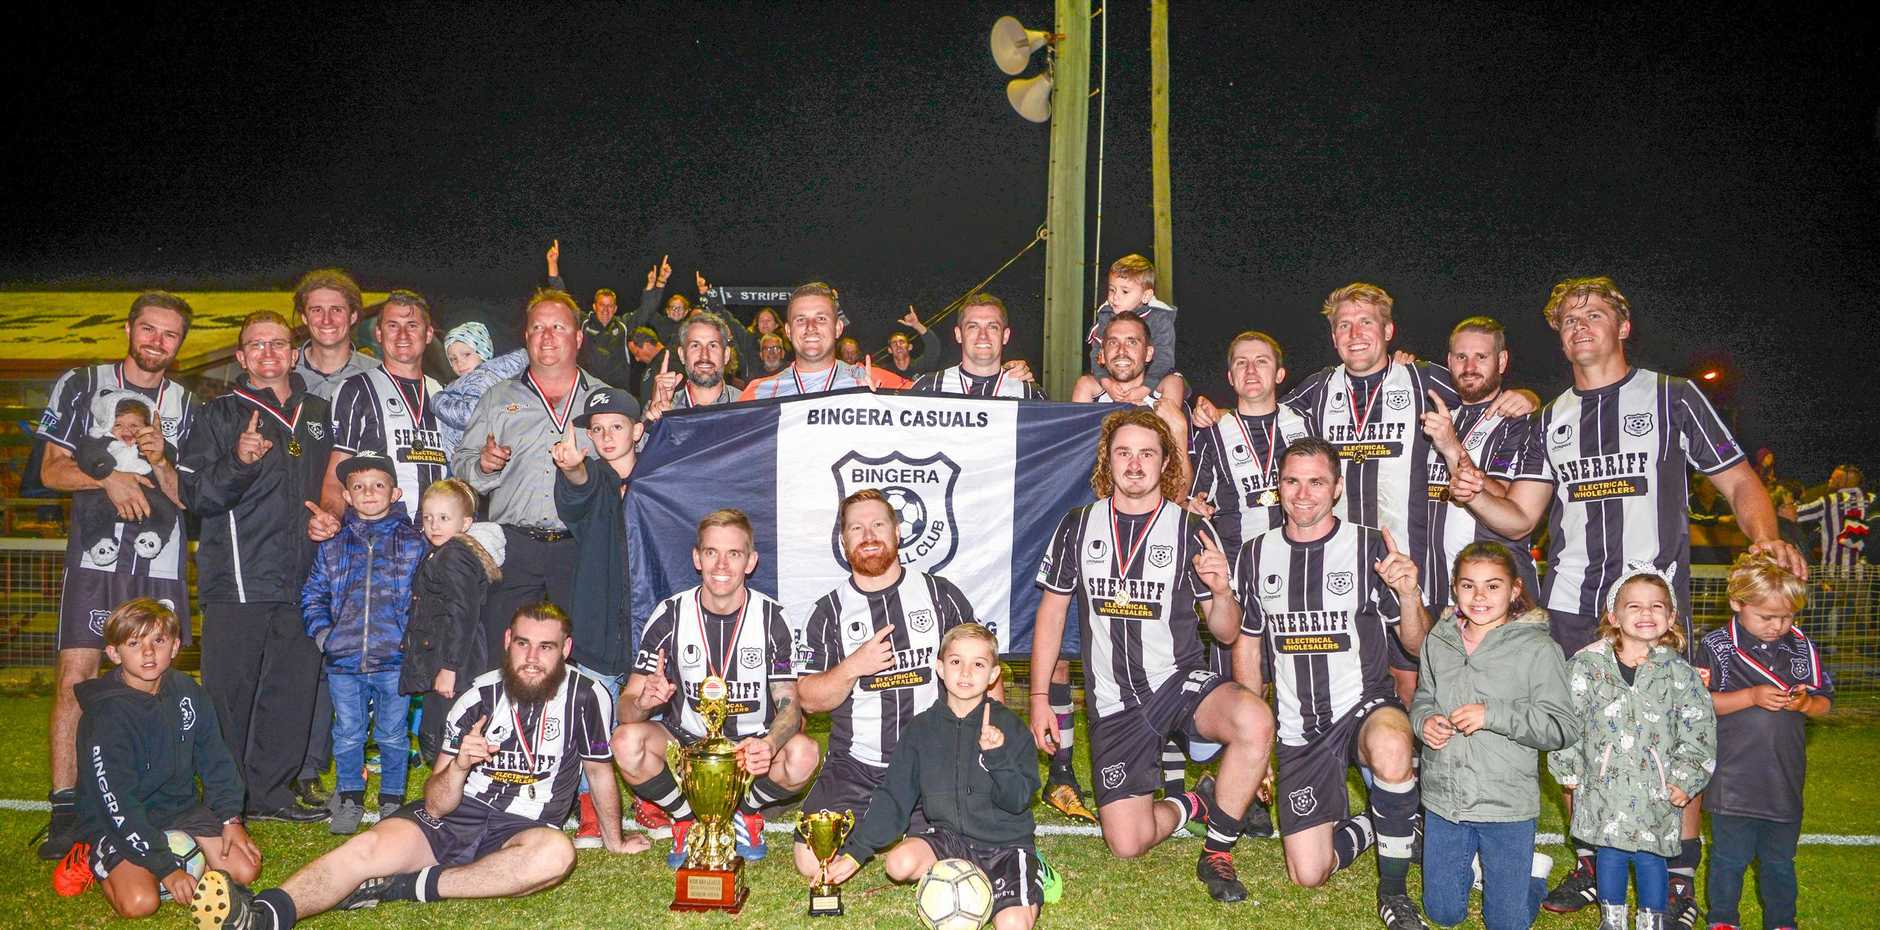 JUST HAVING A BALL: Bingera Football Club will be hoping for the same feeling this year after winning last year's Wide Bay Premier League.